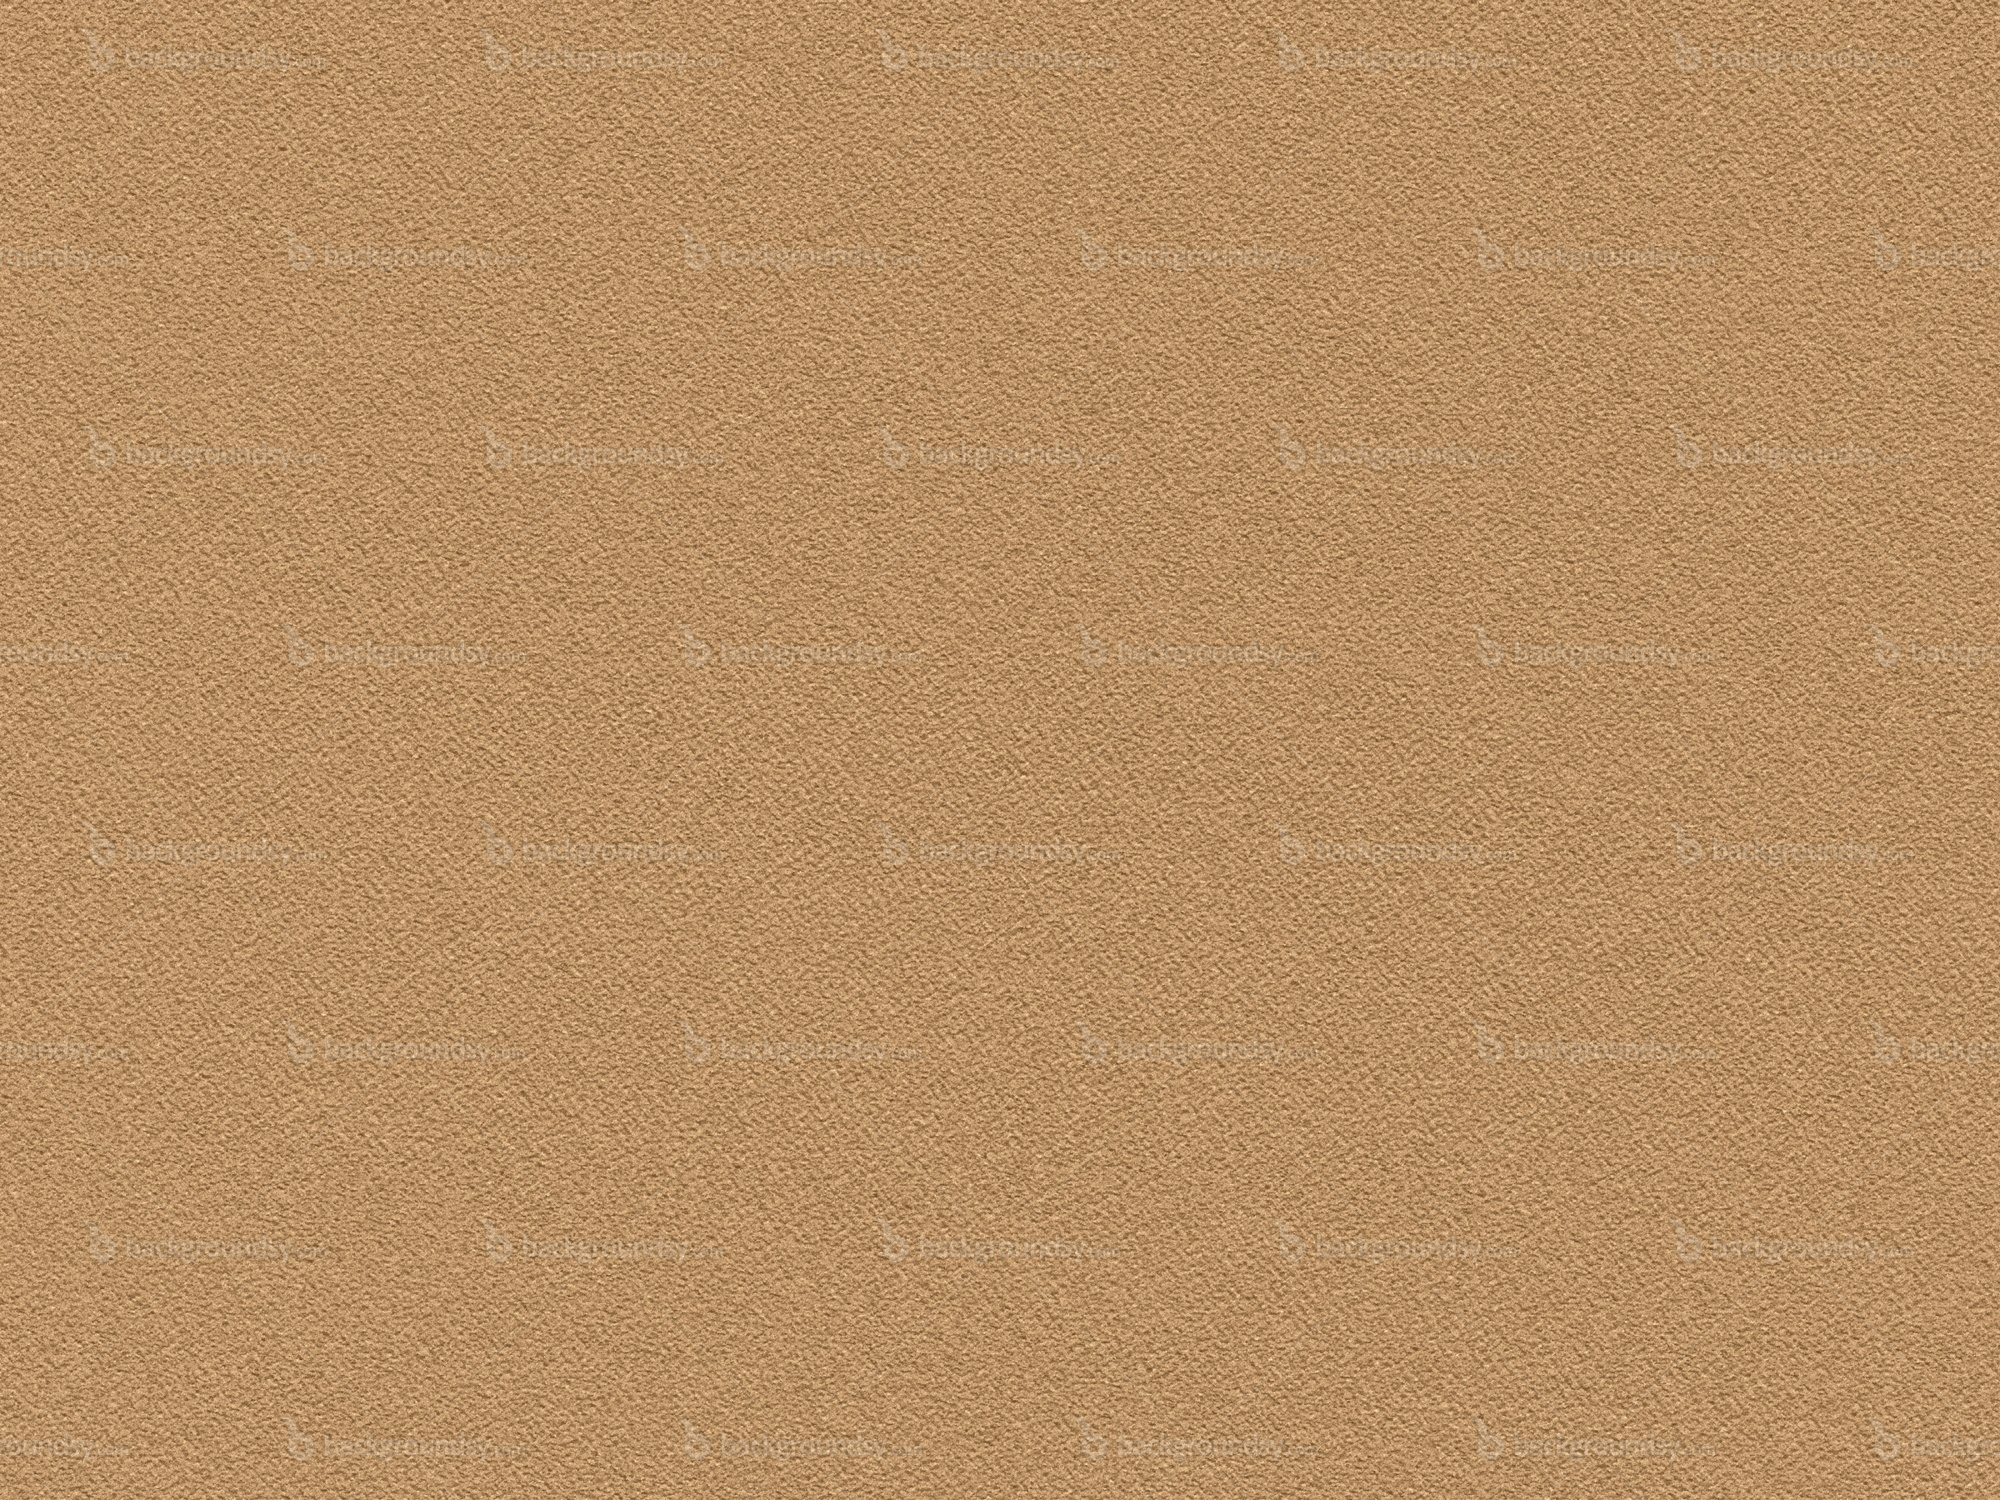 Brown Recycled Paper Texture | www.pixshark.com - Images ...